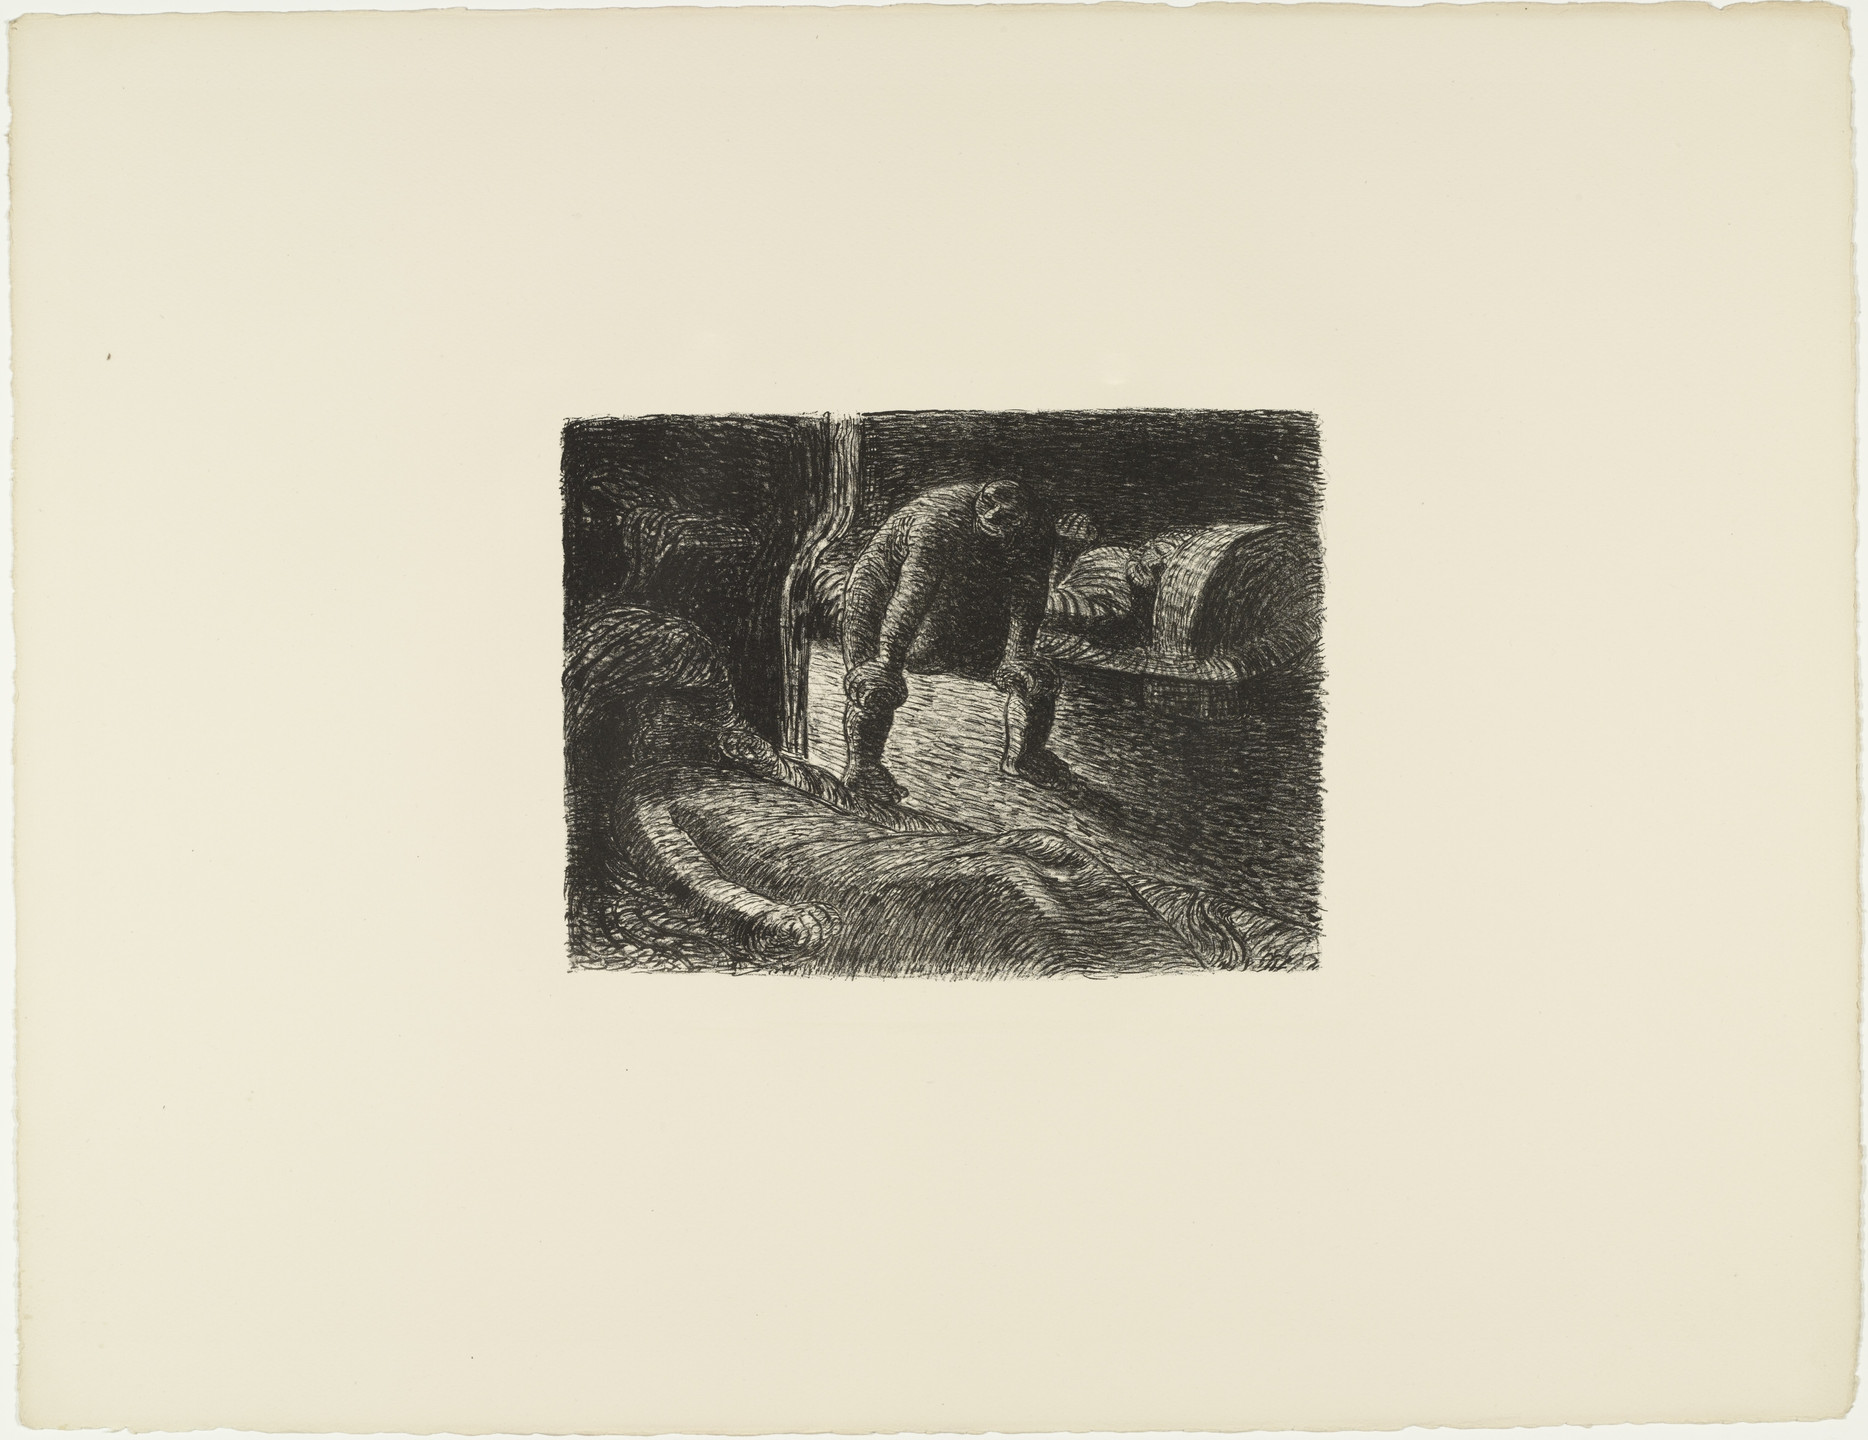 Ernst Barlach. The Gobblin (Der Alb) from The Dead Day (Der tote Tag). (1910-11, published 1912)